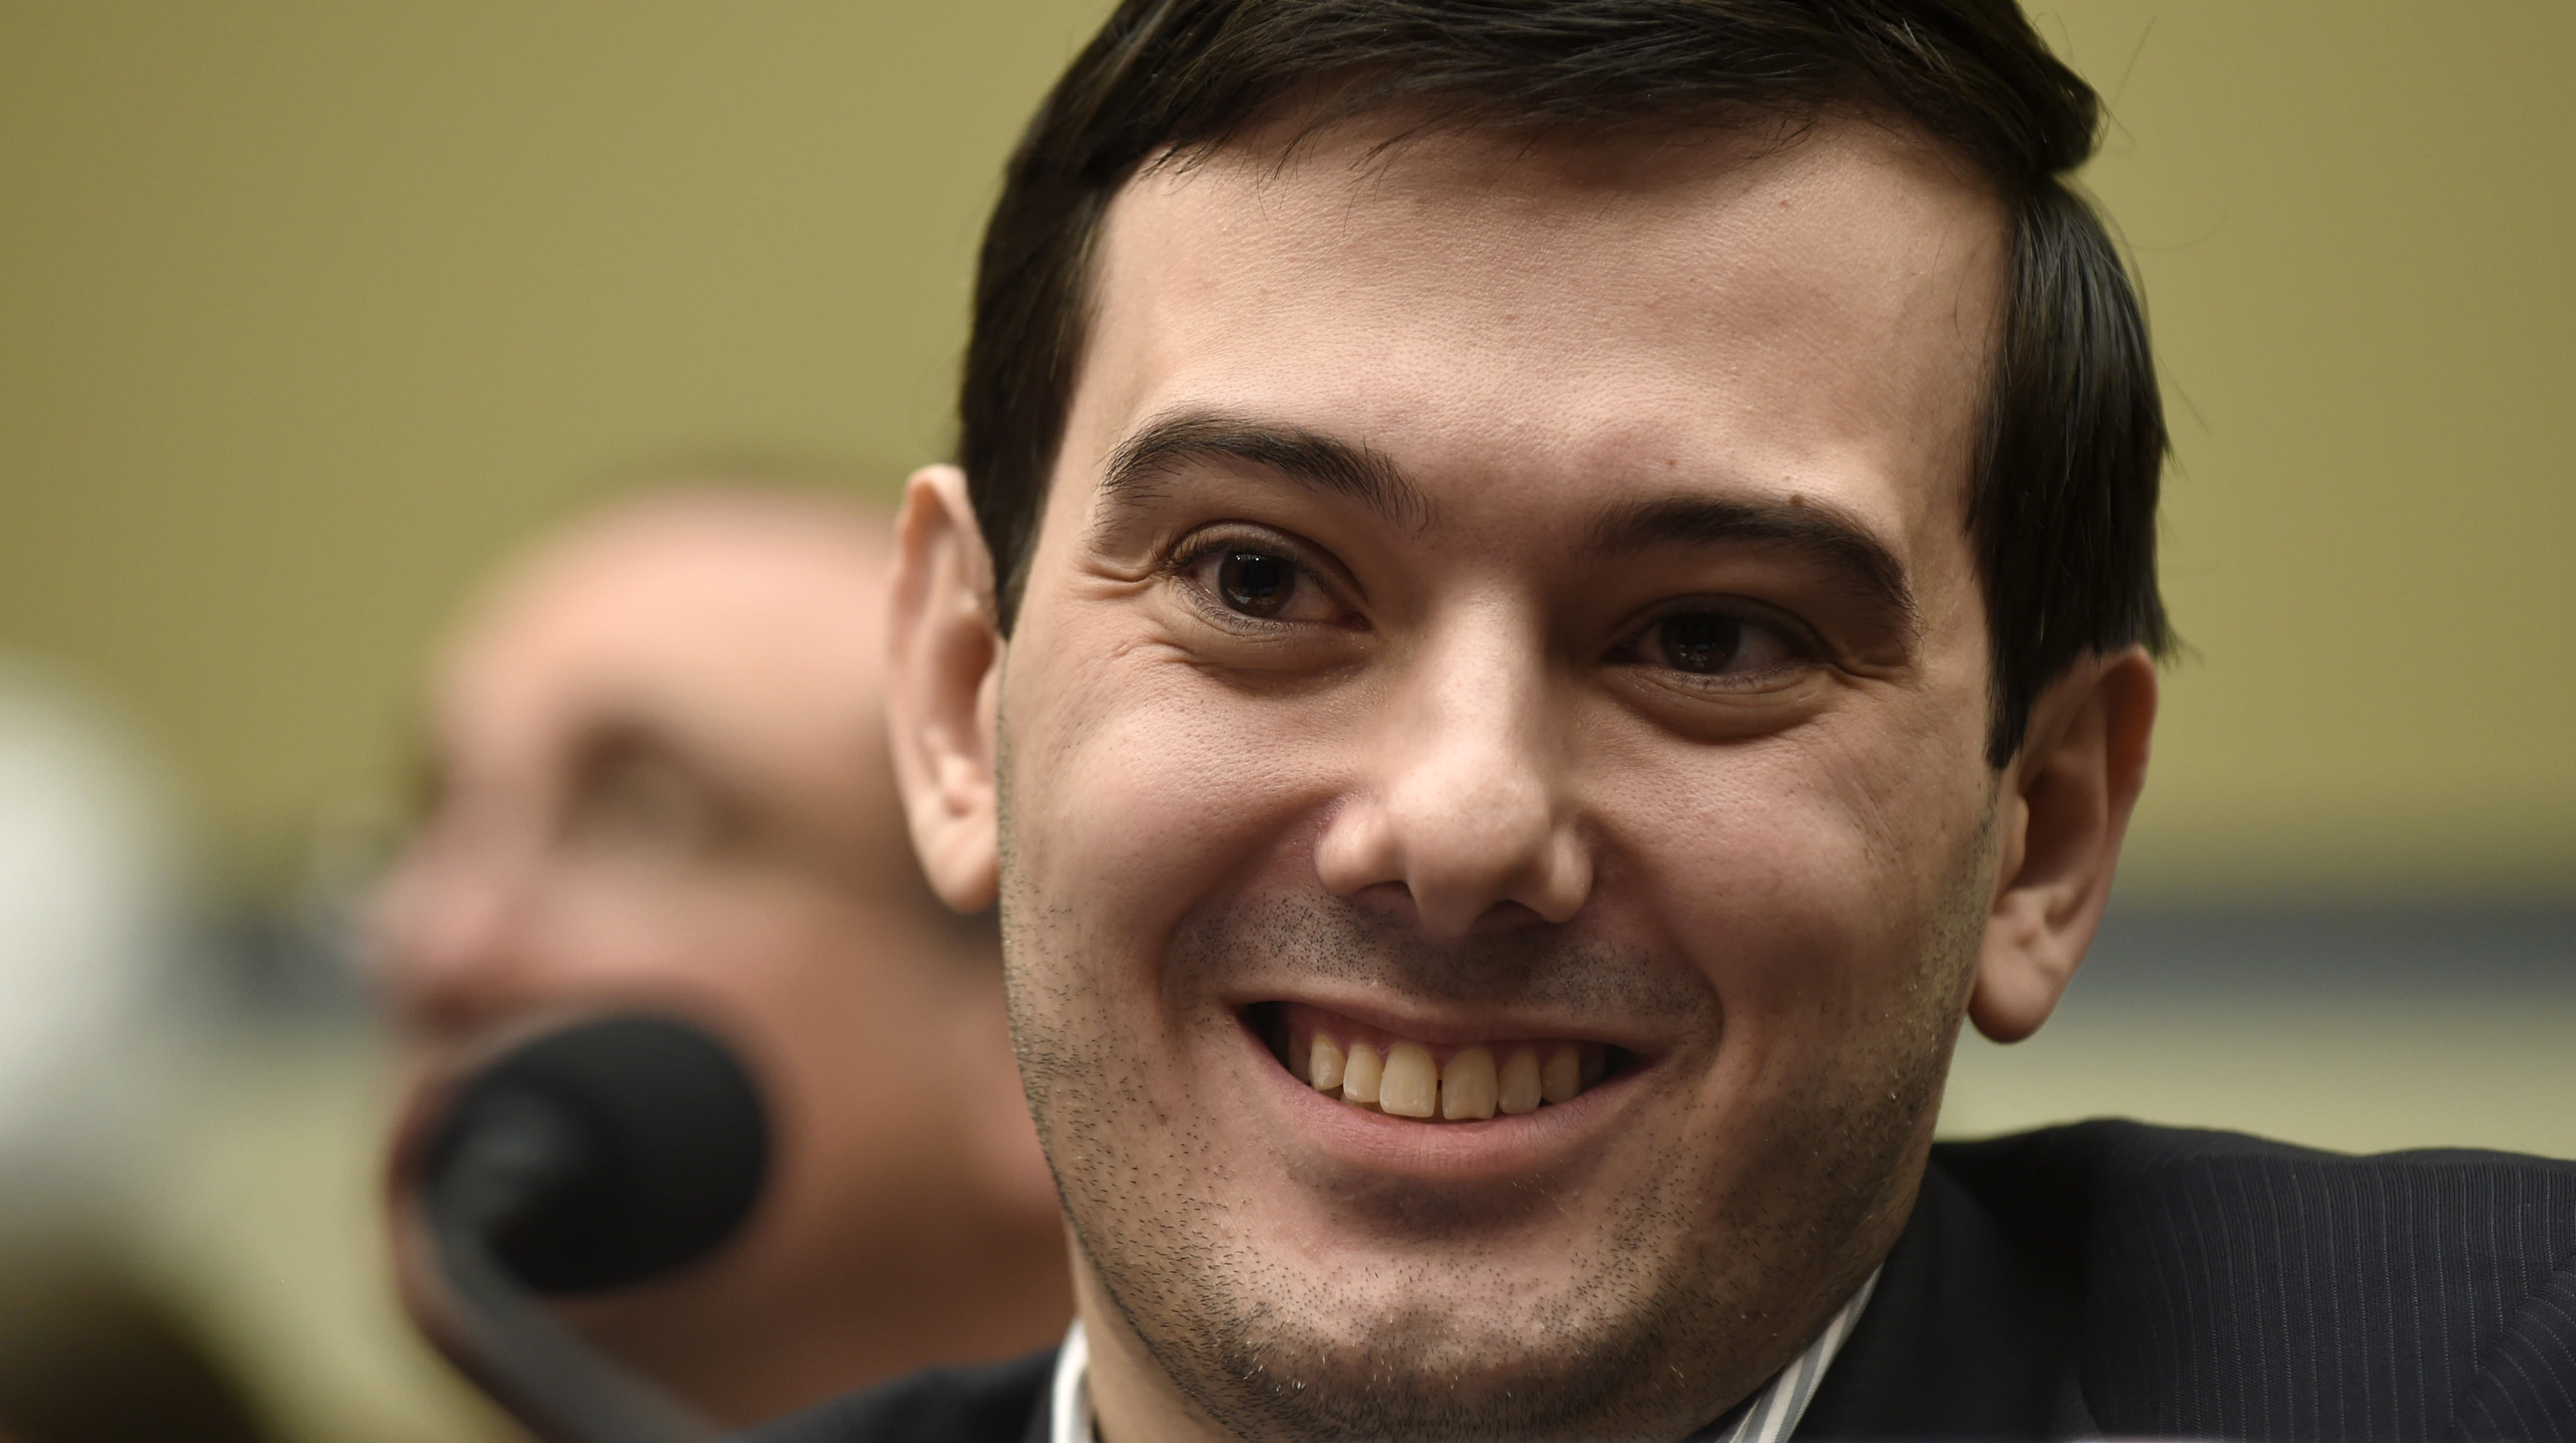 'Pharma Bro' Martin Shkreli pleads the Fifth at hearing, dodges questions